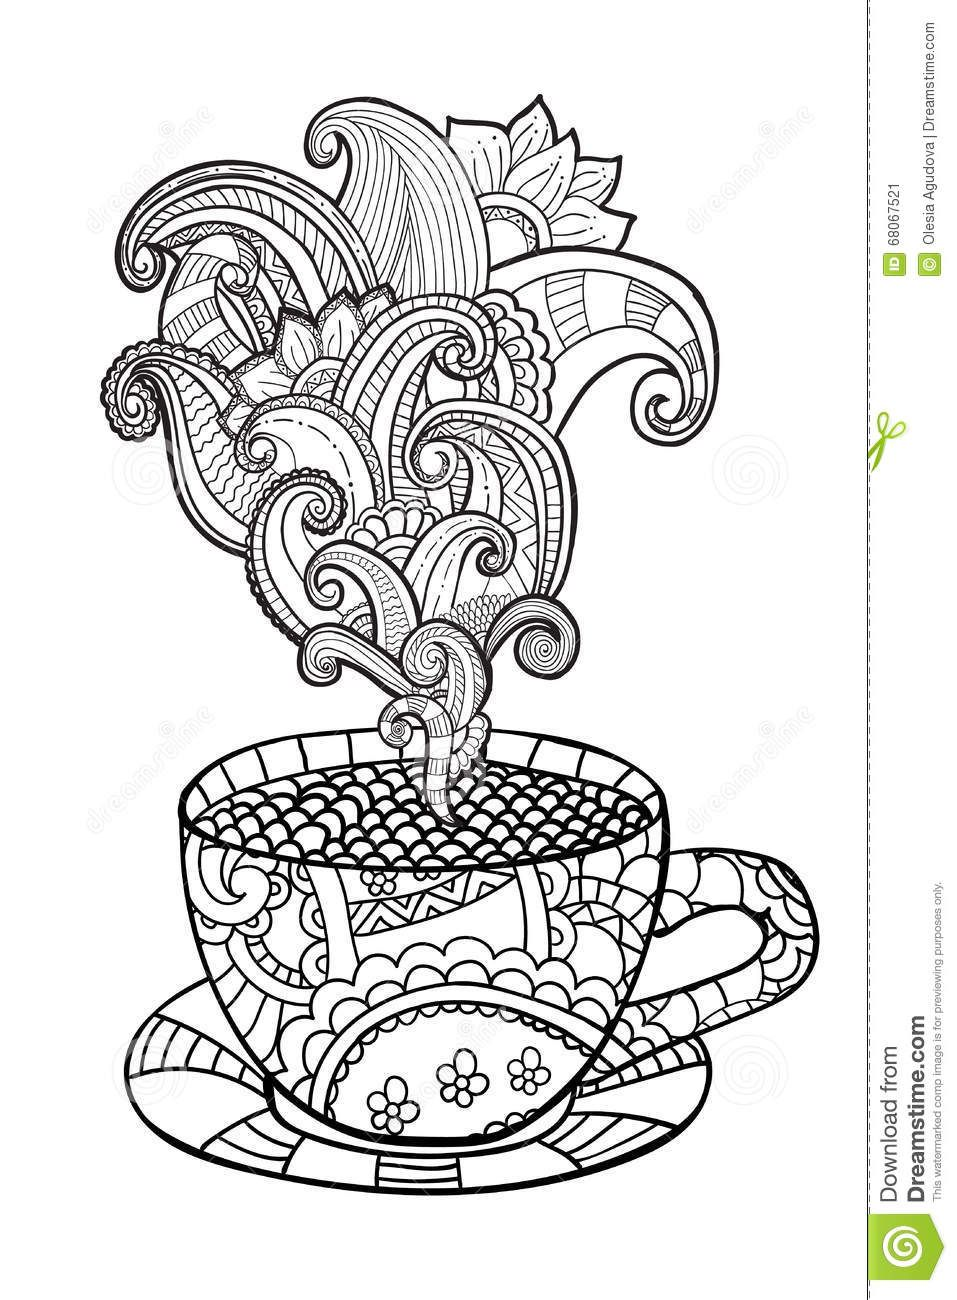 colouring book page for adults pesquisa google colorir